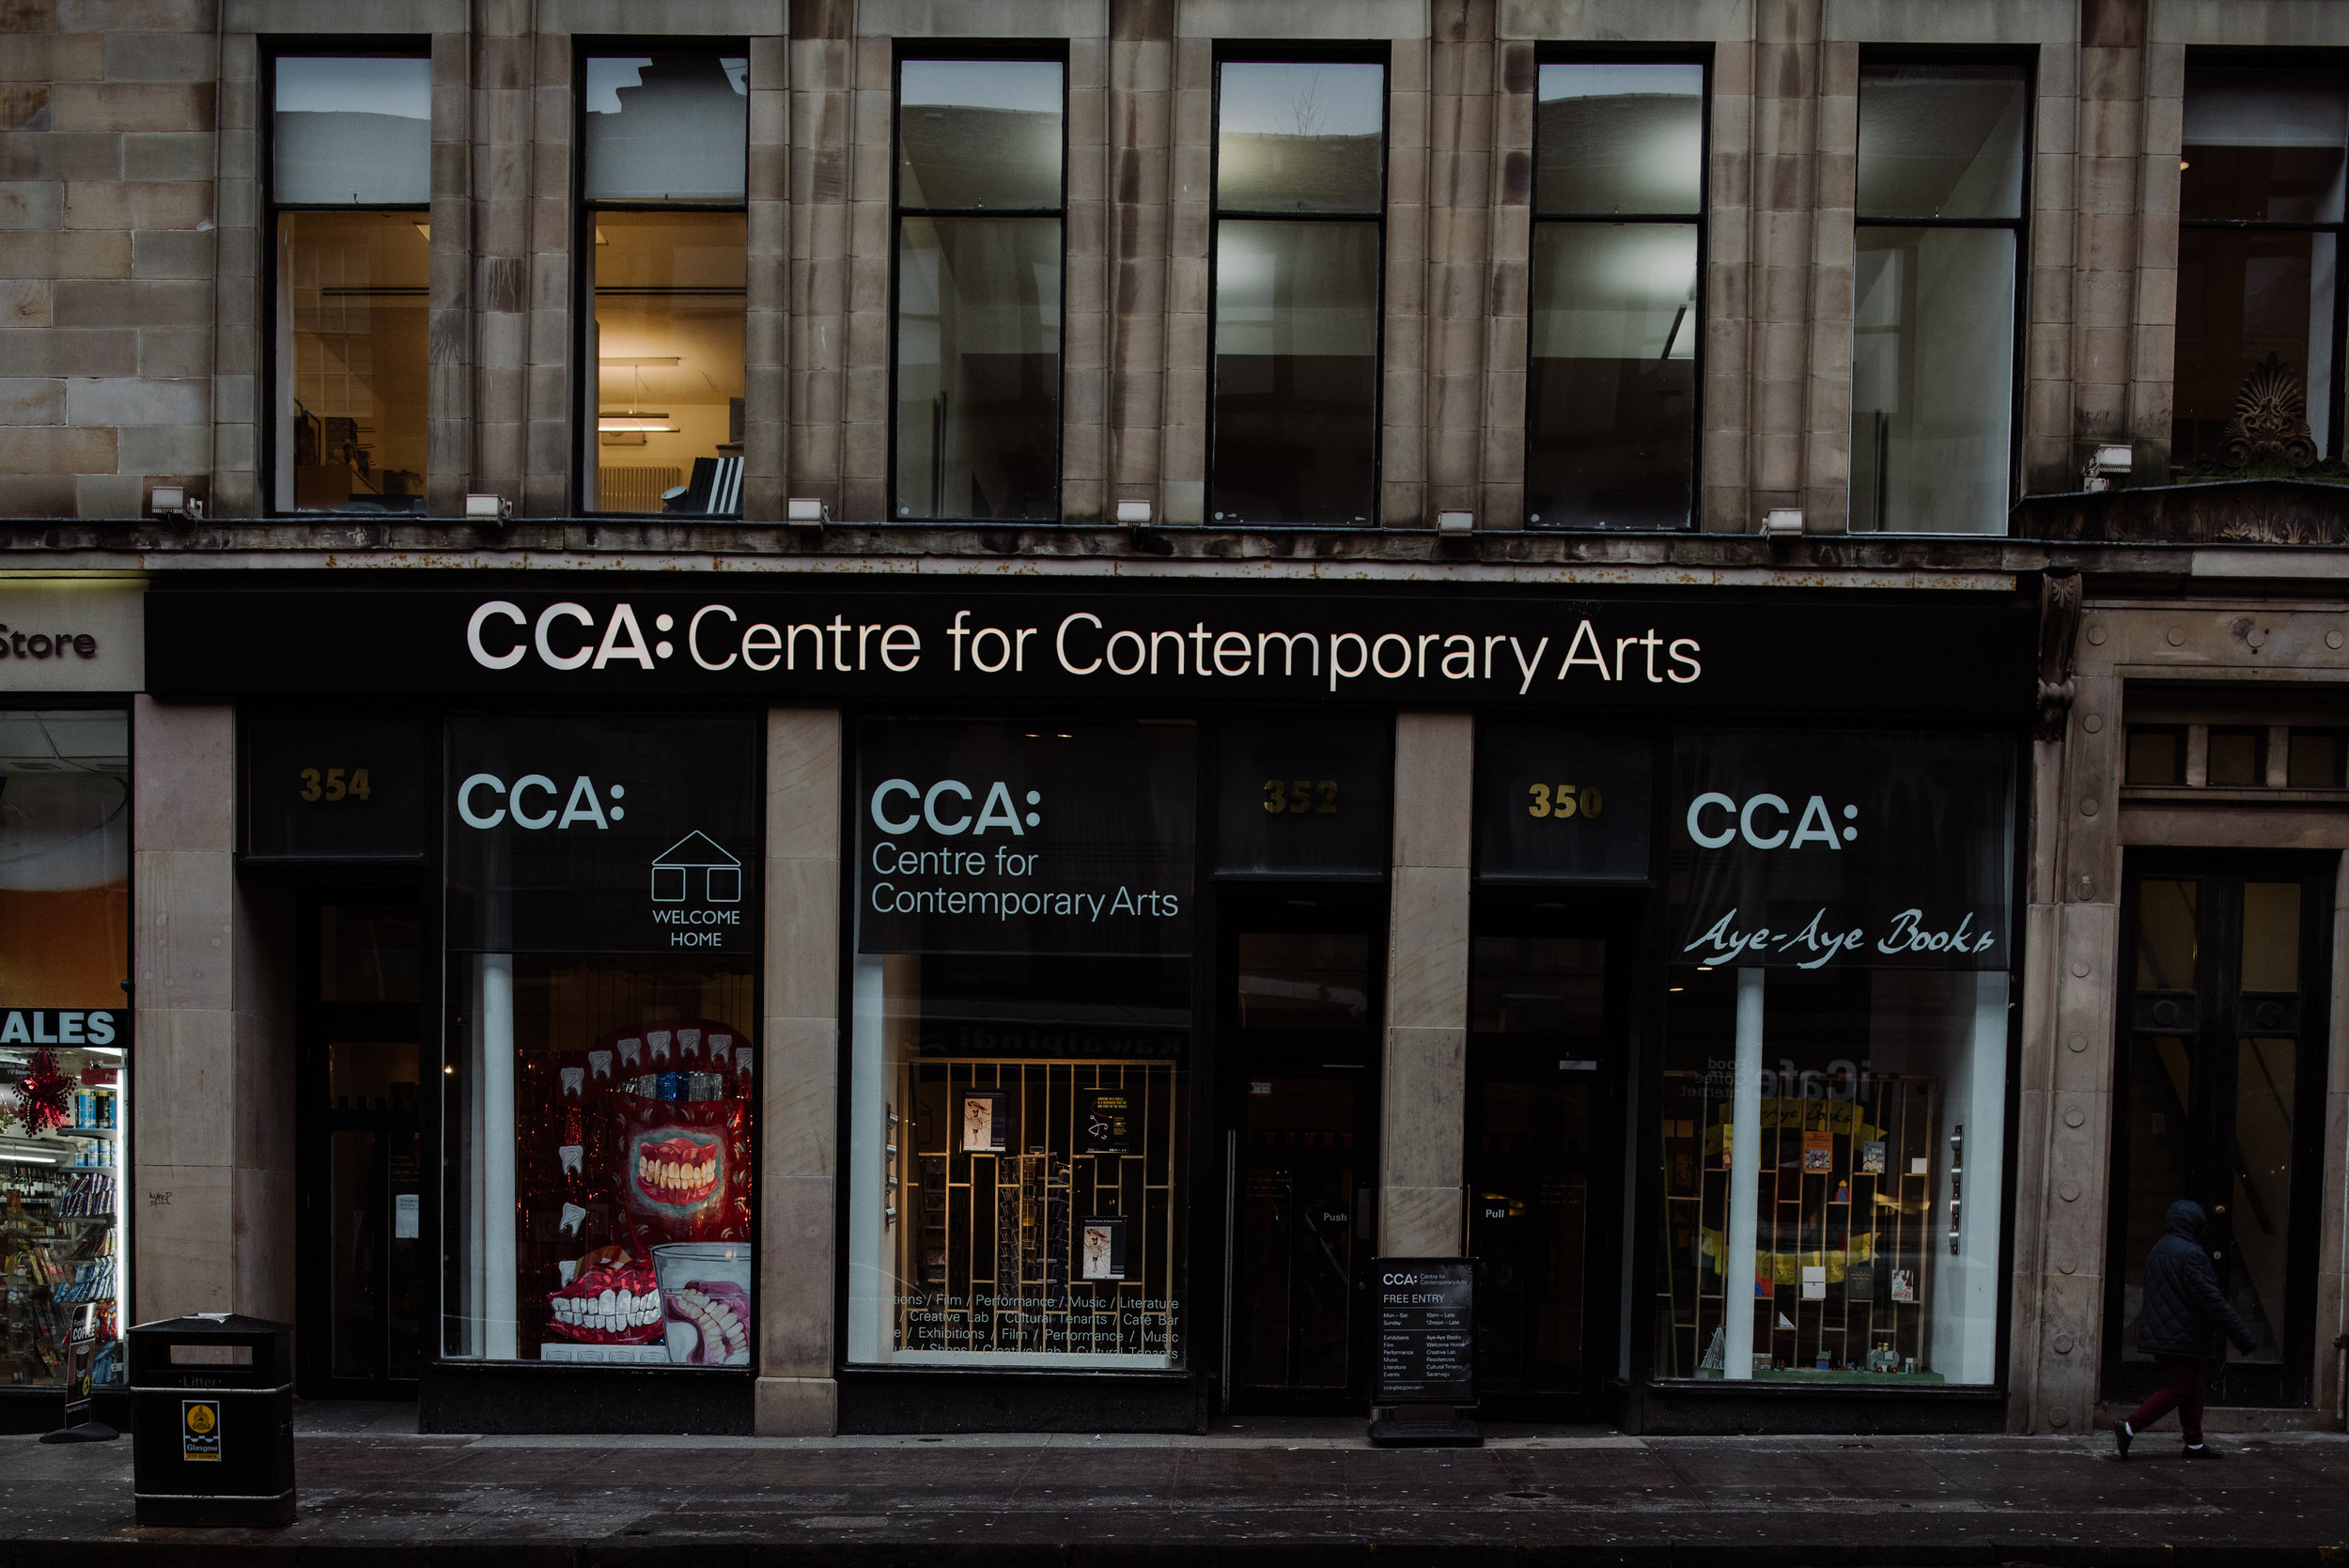 The CCA Building